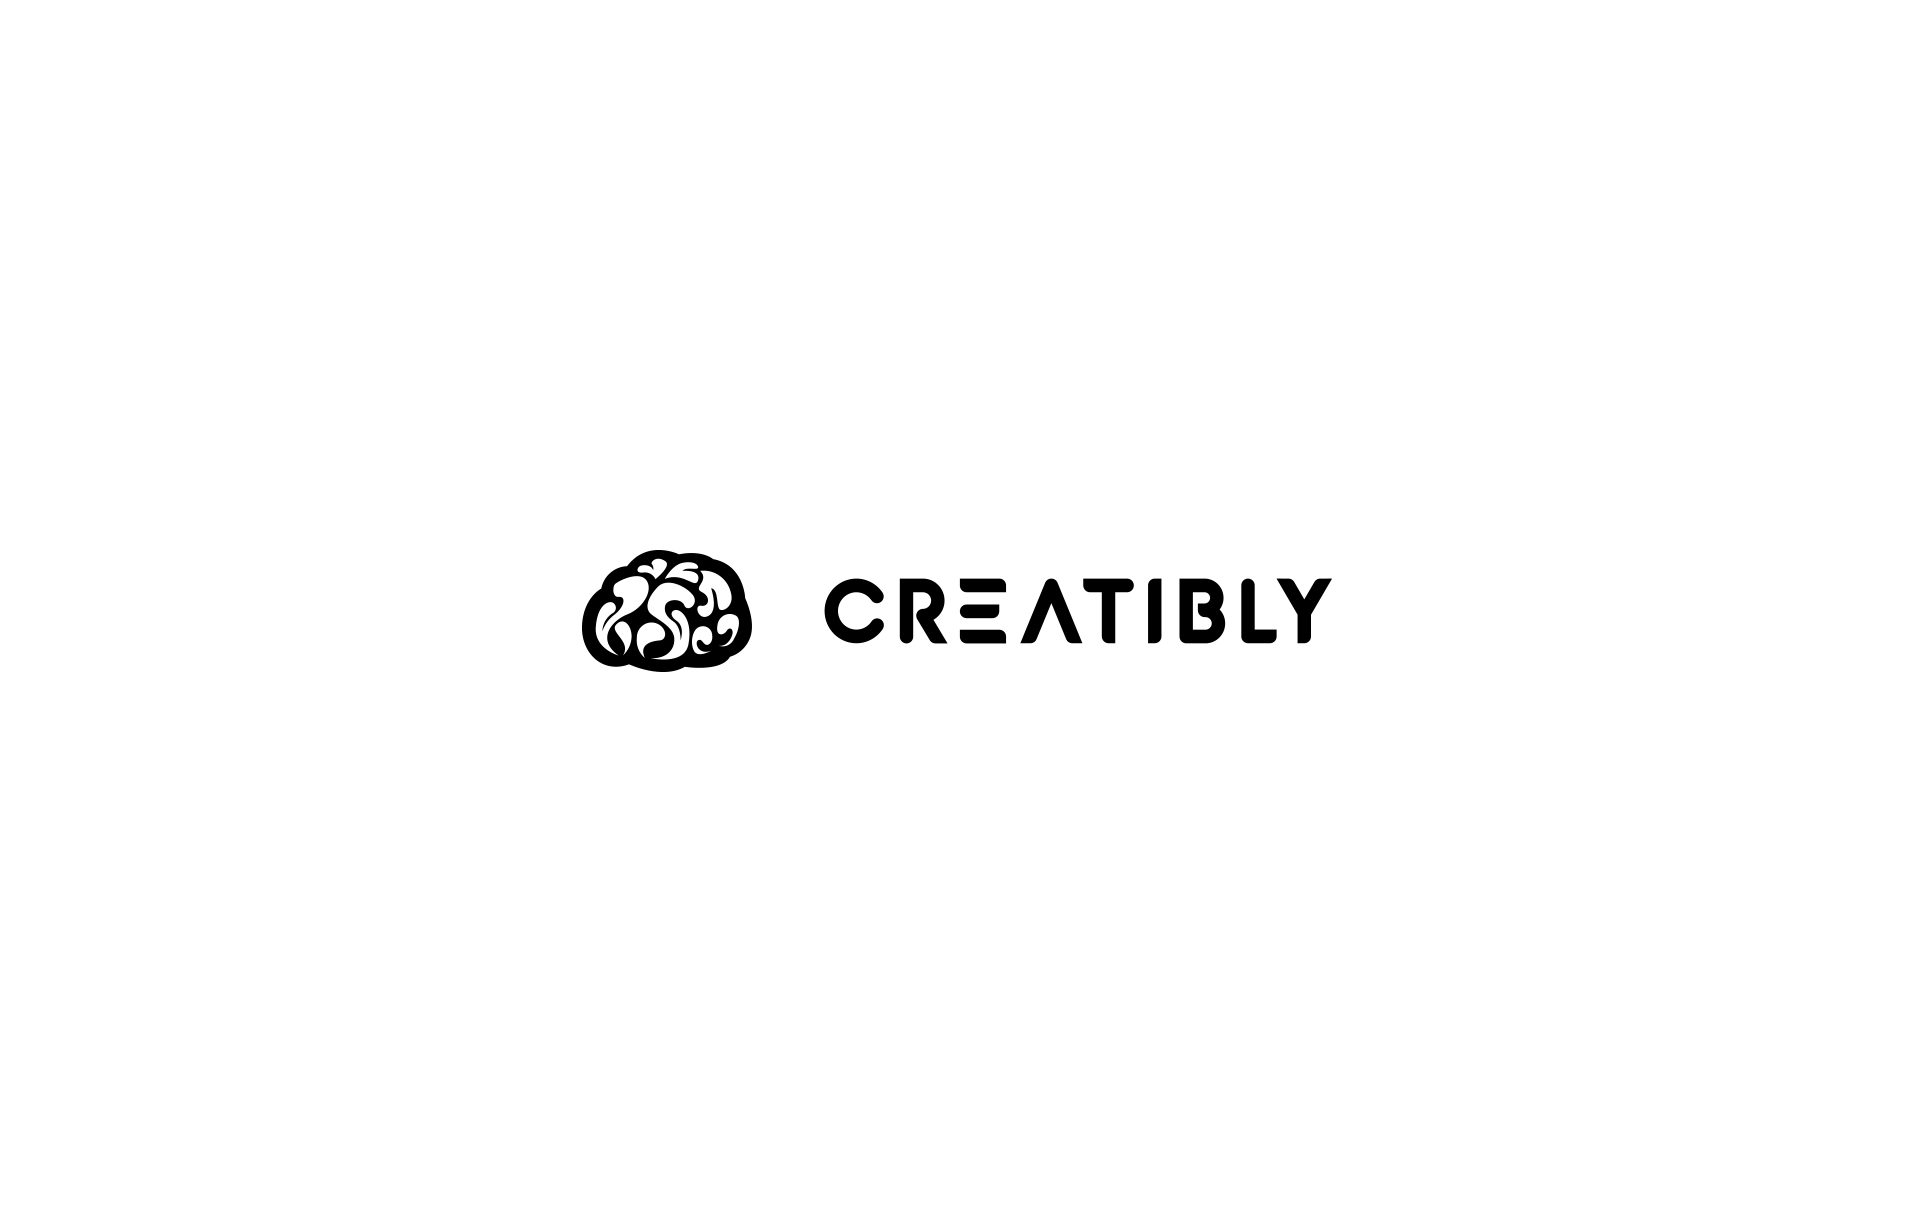 Creatibly Logo Design By Scott Luscombe